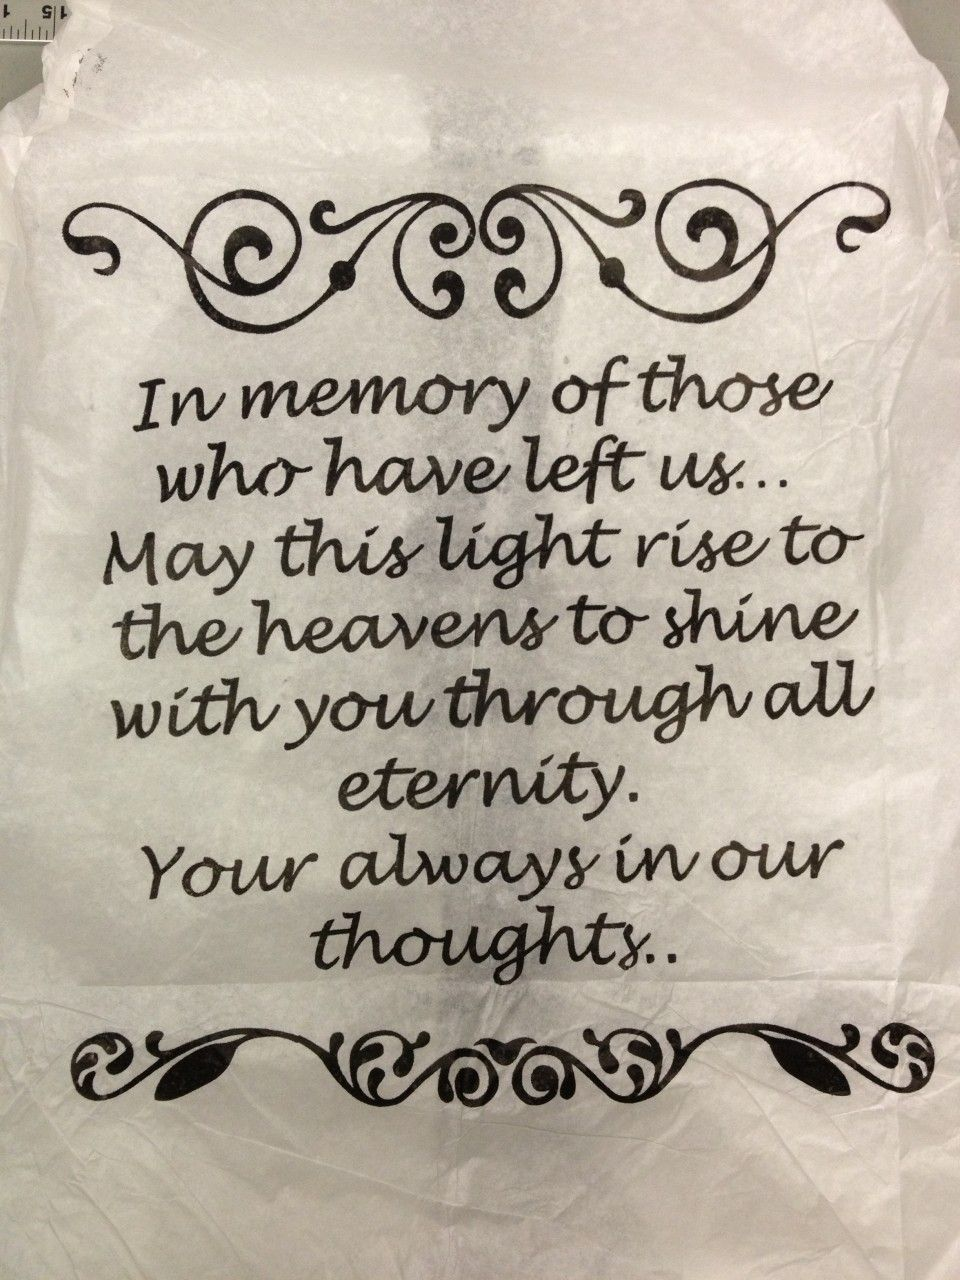 In Remembrance Quotes Of A Loved One Night Club Supplies Llc  In Memory Of Those Sky Lantern $8.99